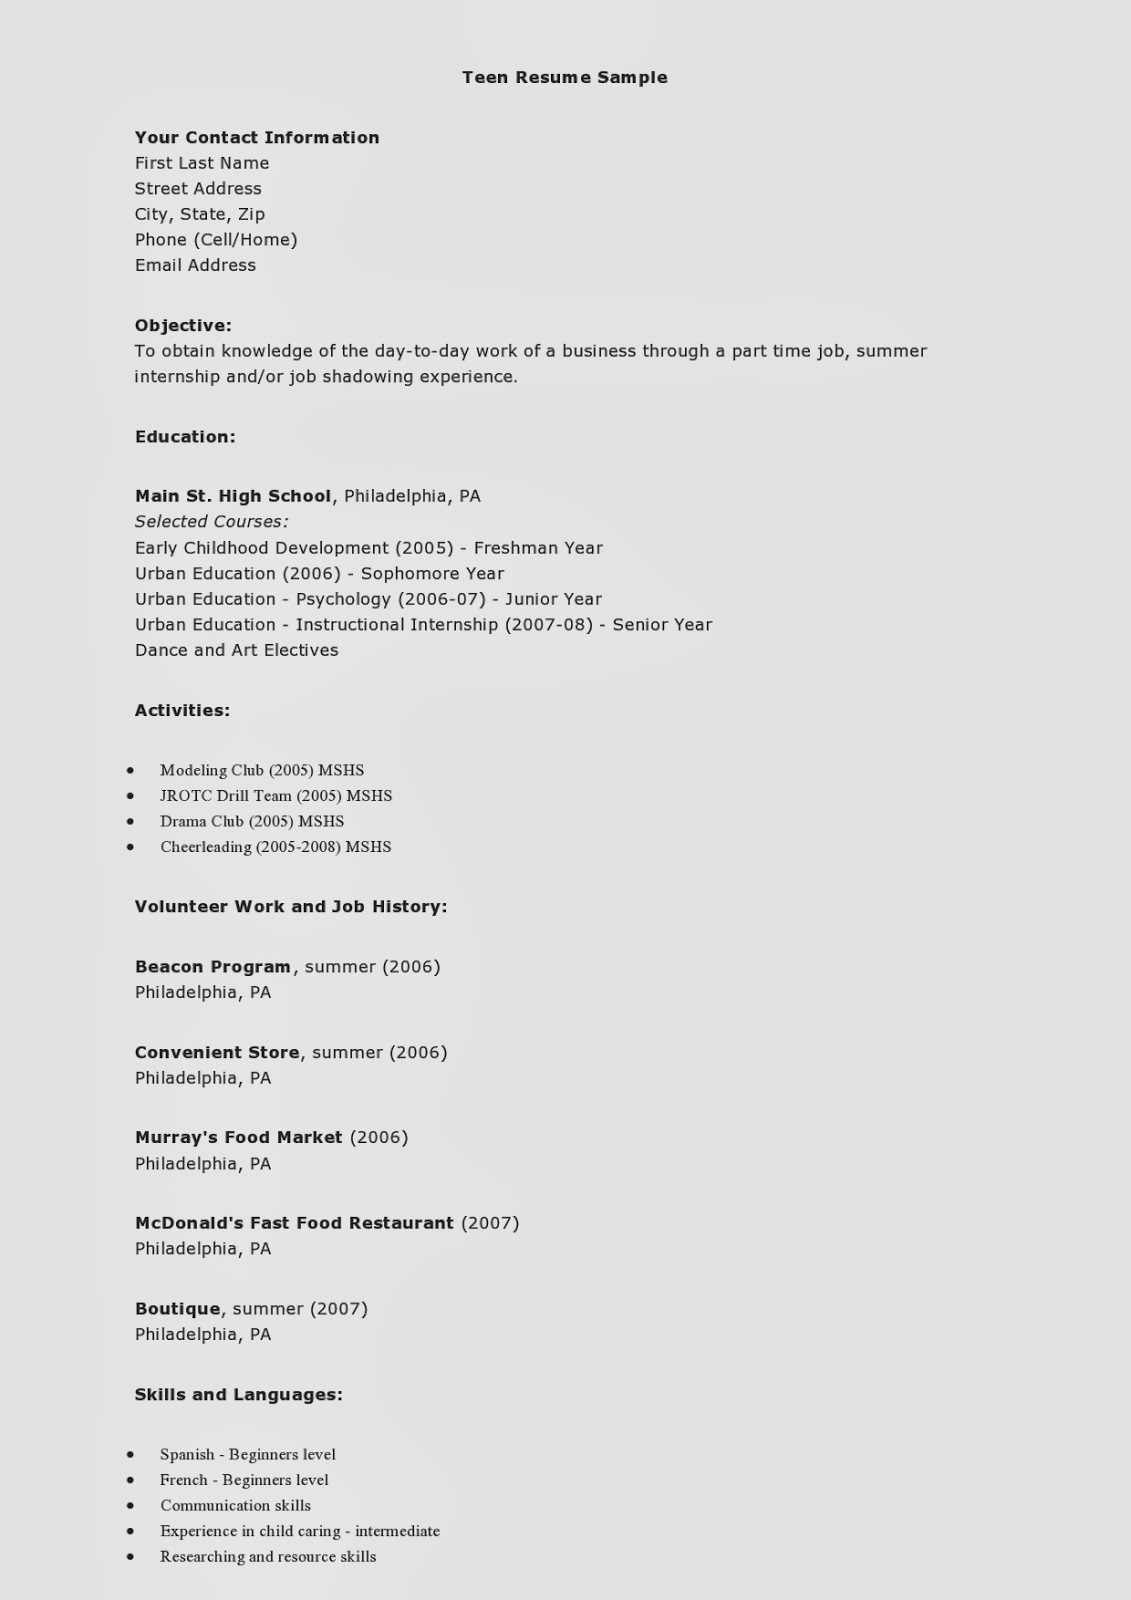 strikingly - Appointment Setter Resume